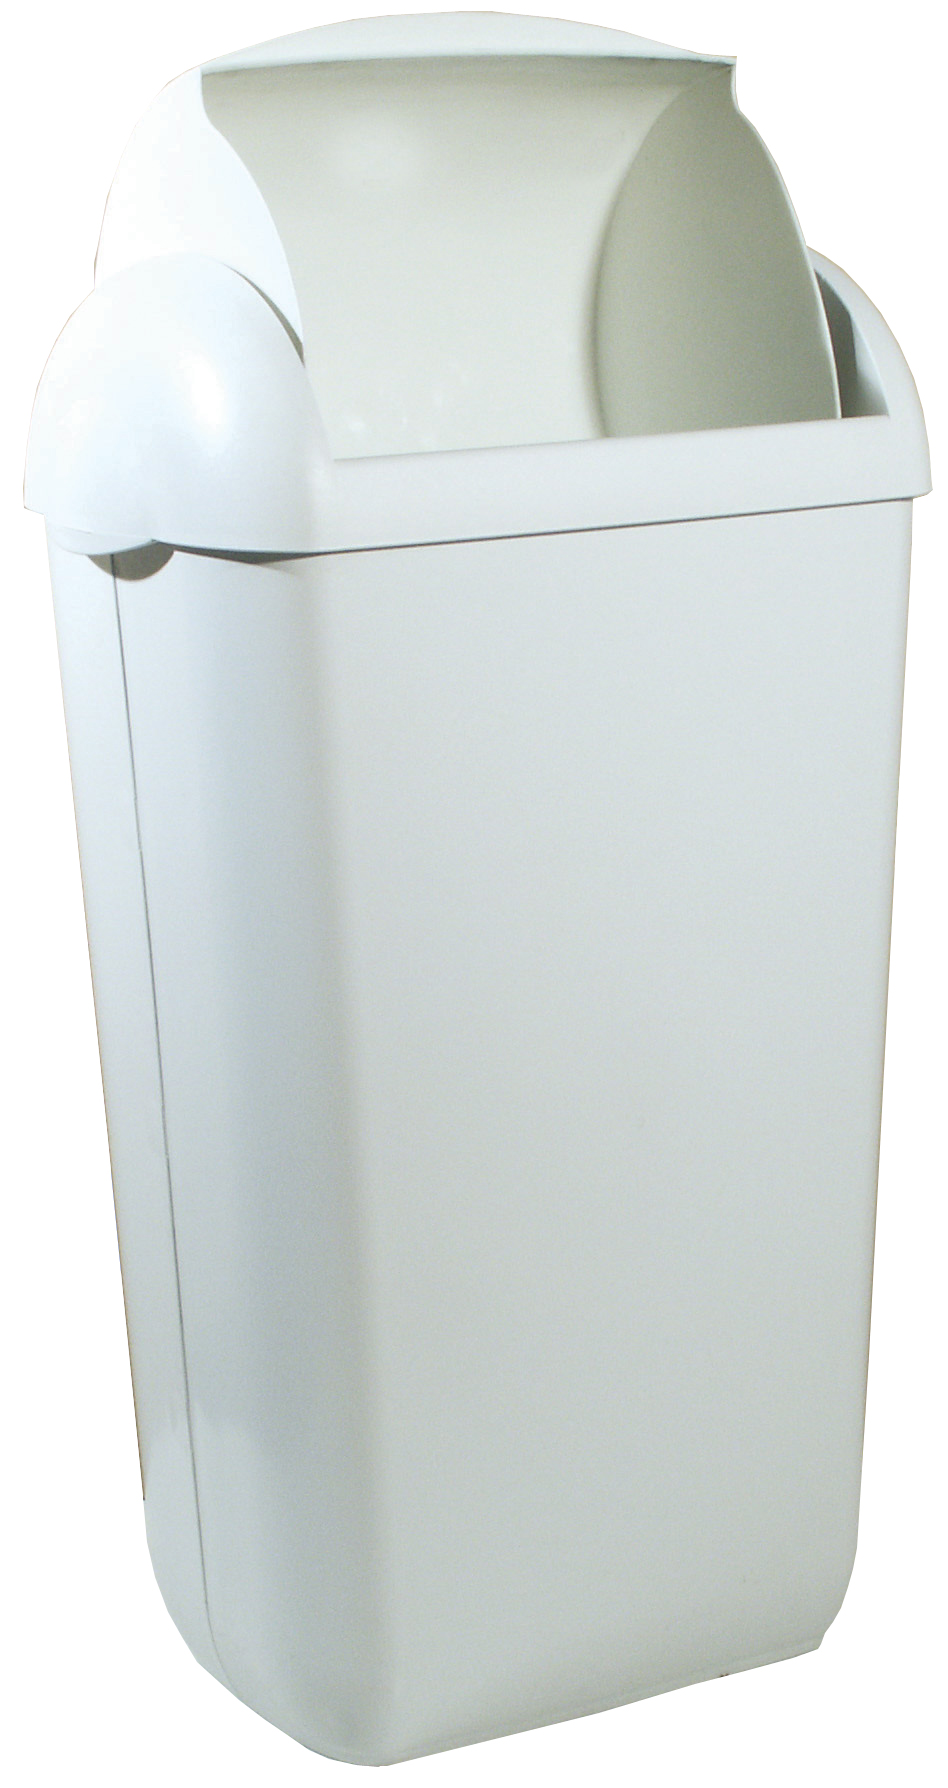 ALL CARE Dispenserline - Hygiene bak Wit 23 liter PL